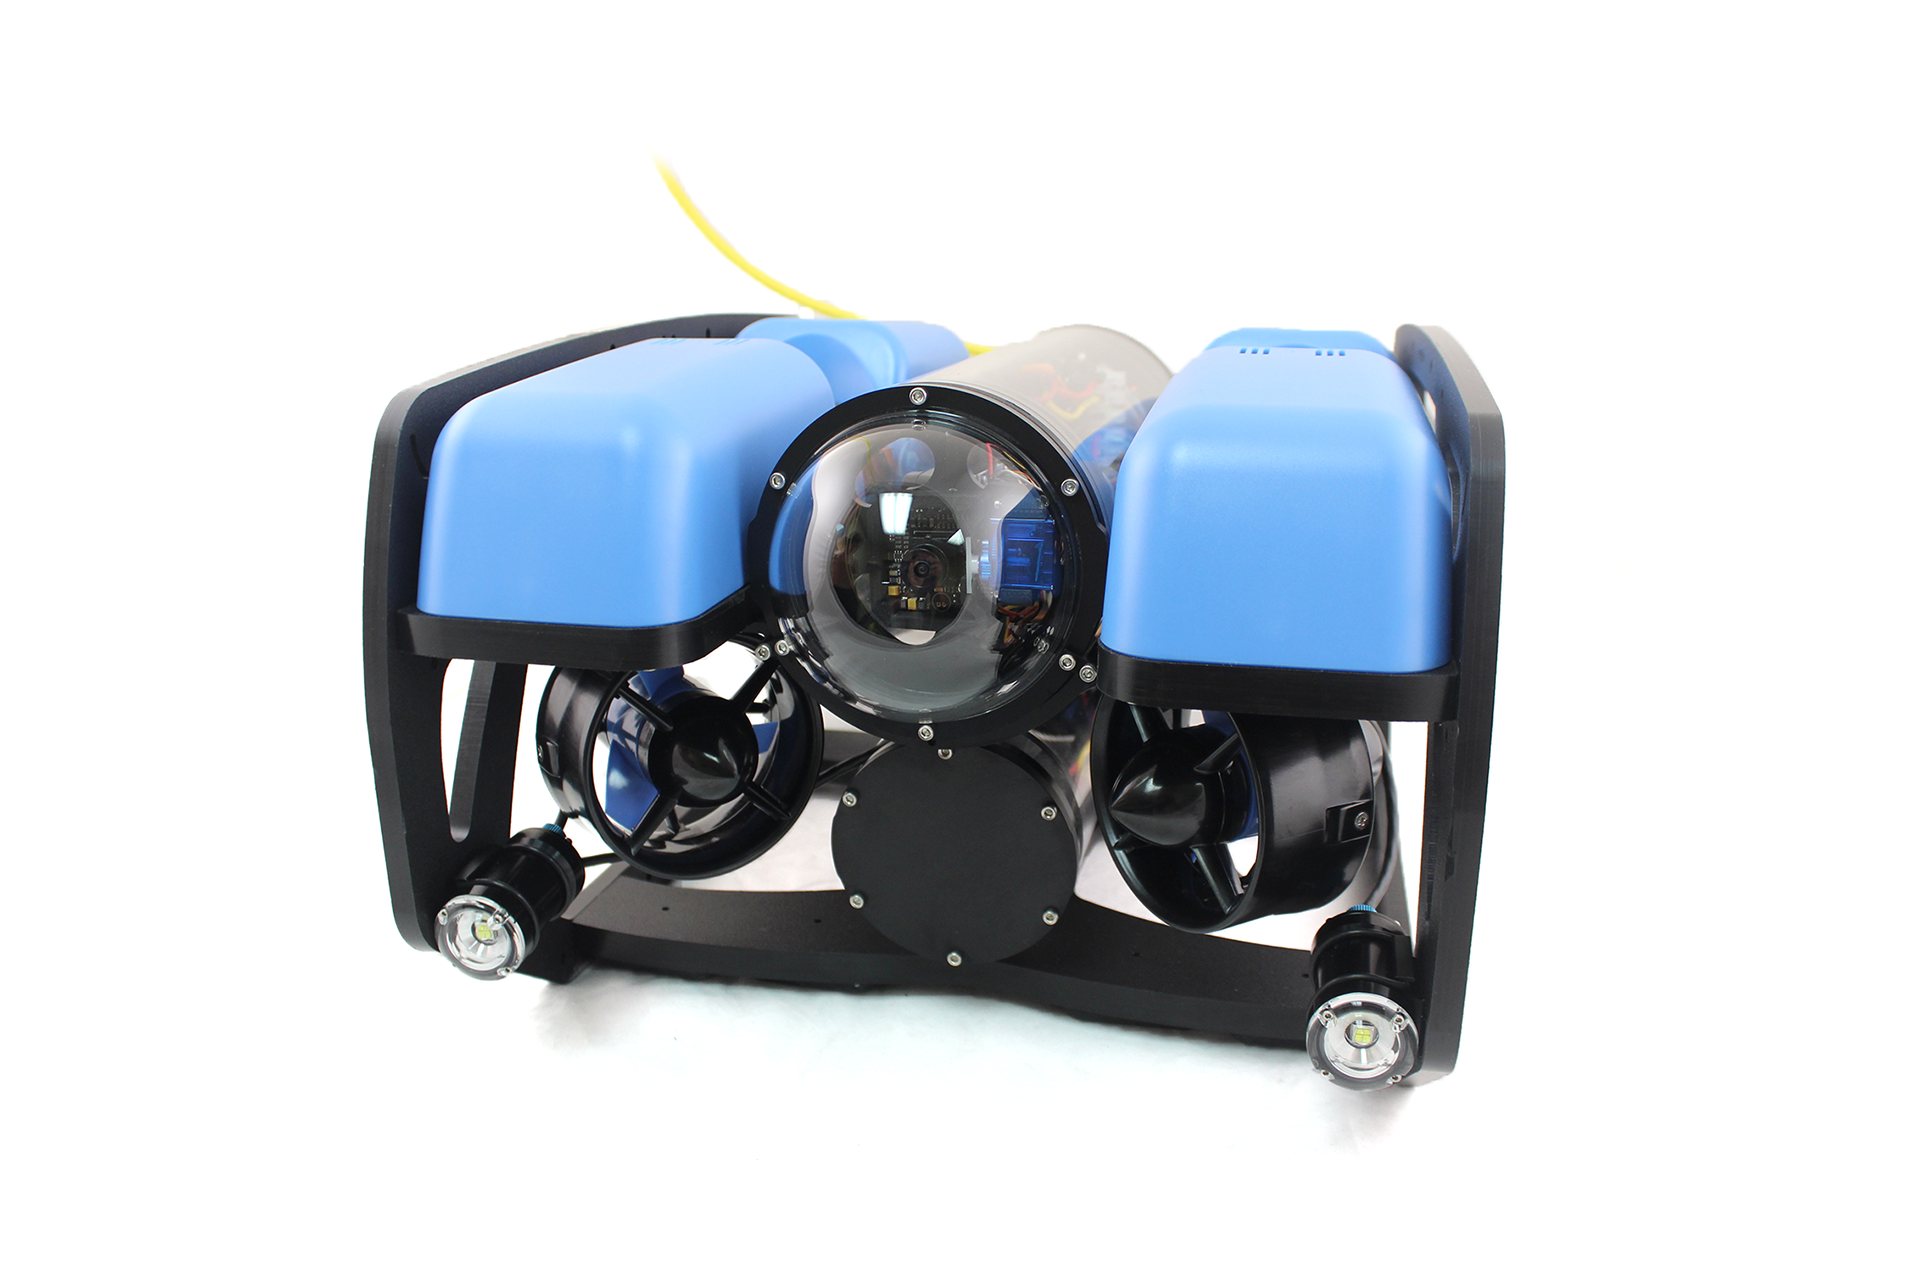 Inspeções subaquáticas – ROV (Remotely Operated Vehicle)